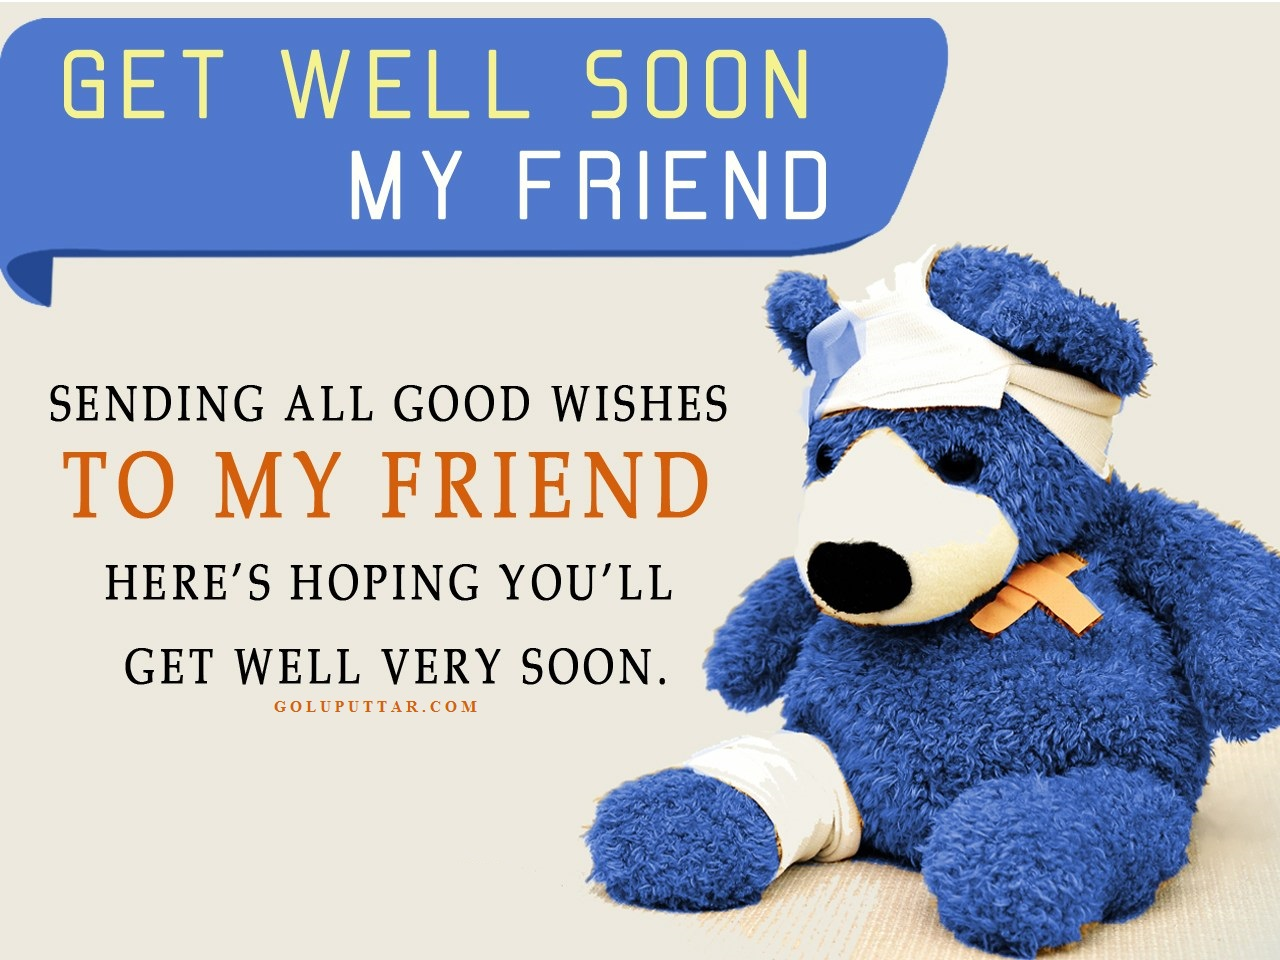 get well soon quotes and sayings for friends - 061